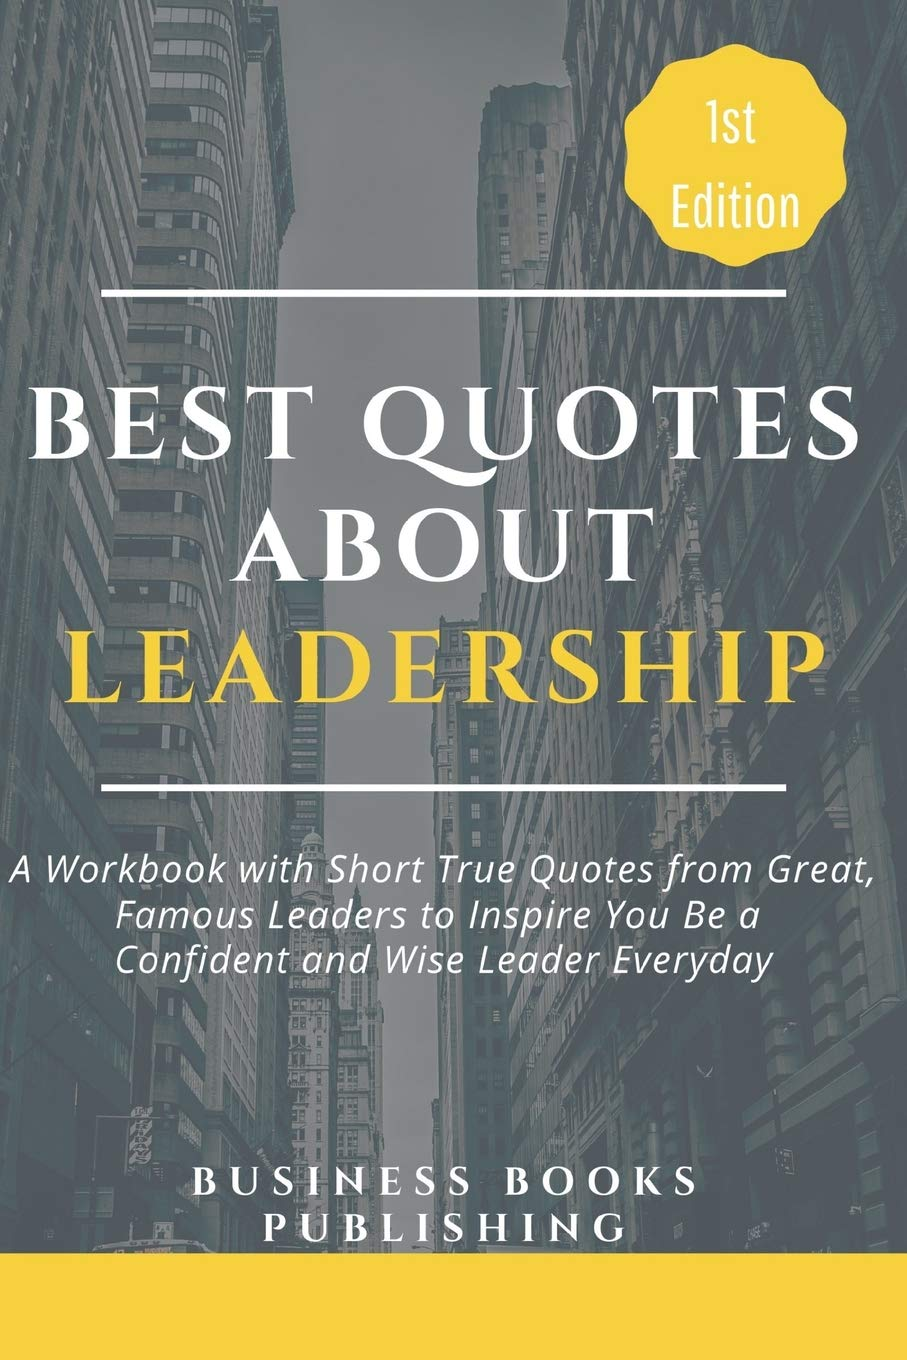 Amazon Com Best Quotes About Leadership A Workbook With Short True Quotes From Great Famous Leaders To Inspire You Be A Confident And Wise Leader Everyday 9781097491285 Publishing Business Books Books